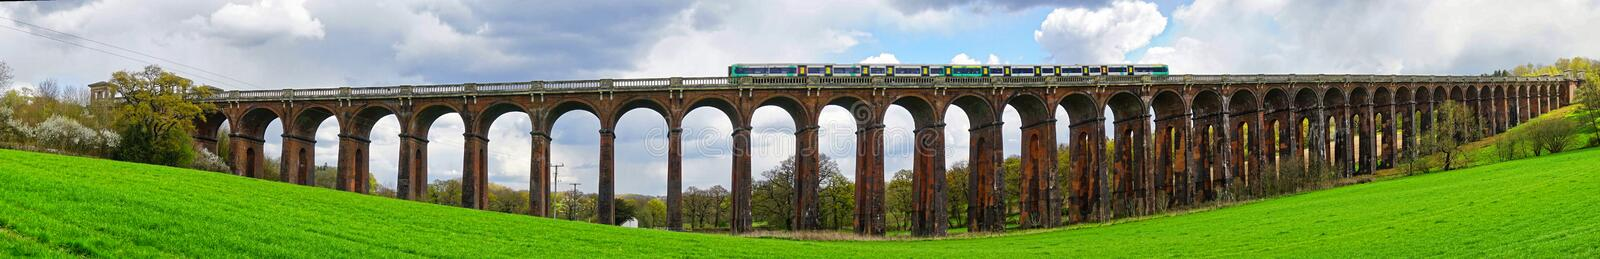 Panorama of Railway Viaduct with Train stock image